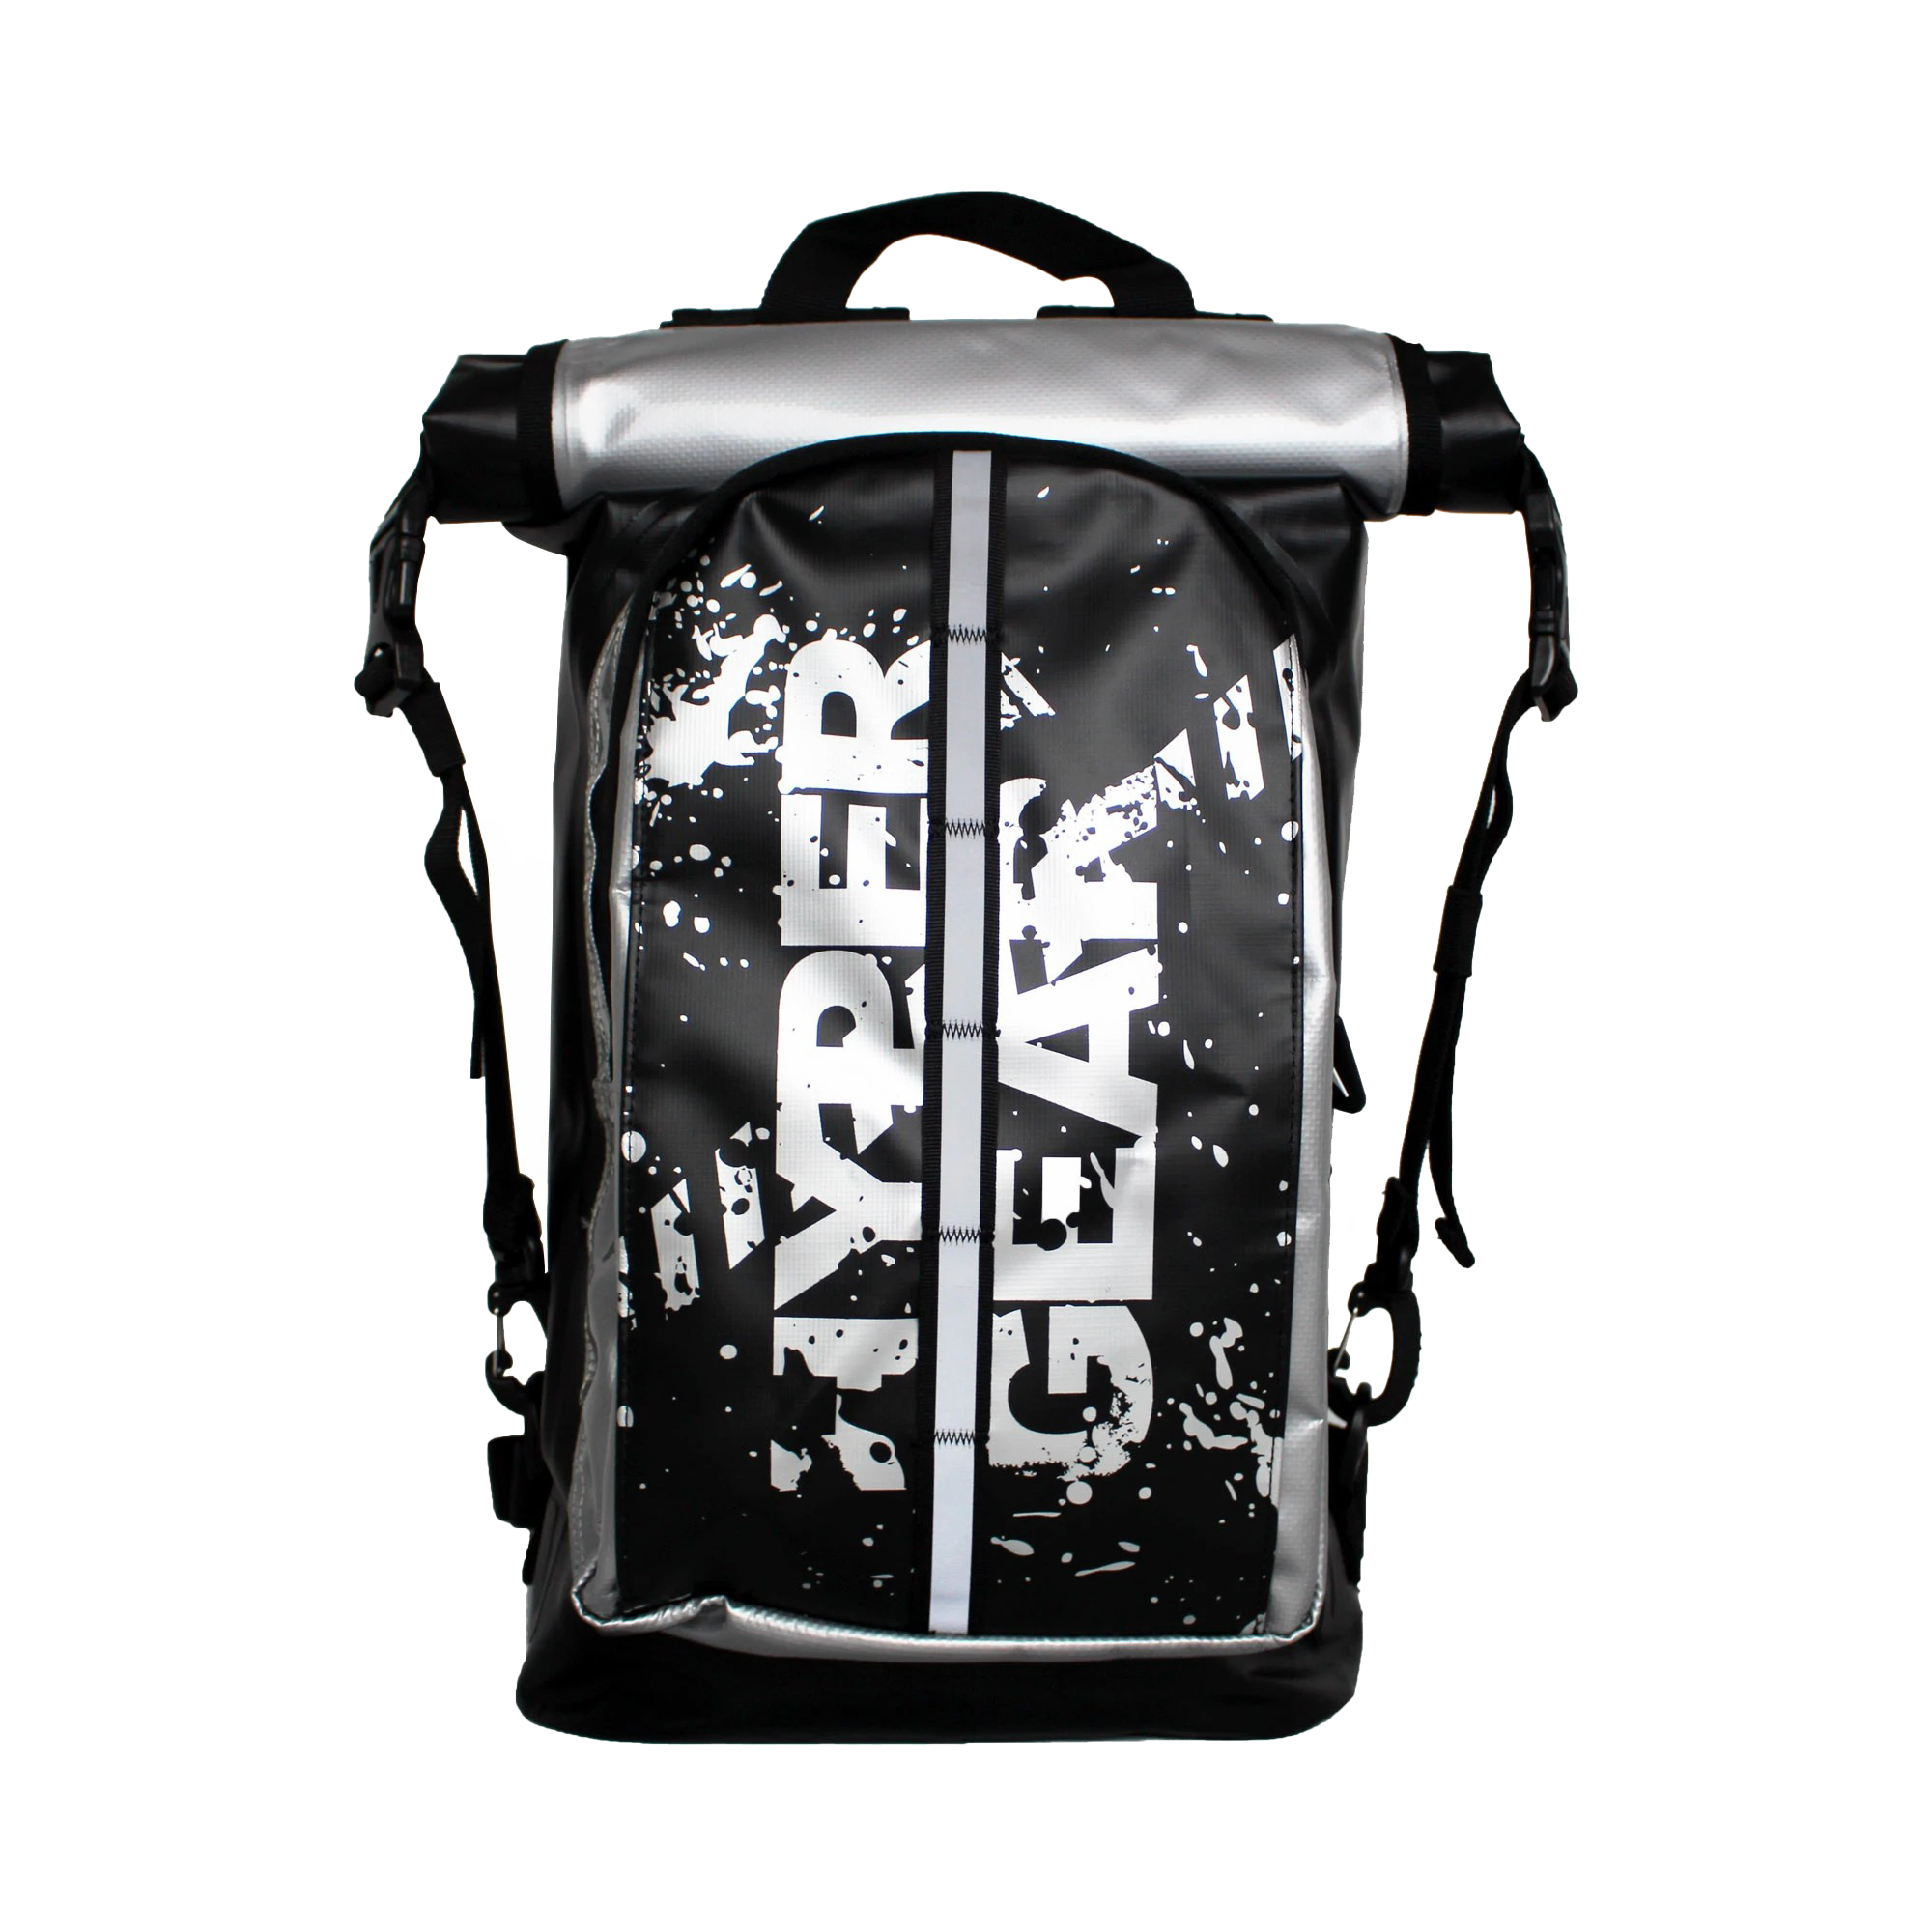 49 HYPERGEAR DRY PAC COMPACT 20L SPECIAL EDITION (FAST SLOT ADAPT) SILVER (1).png